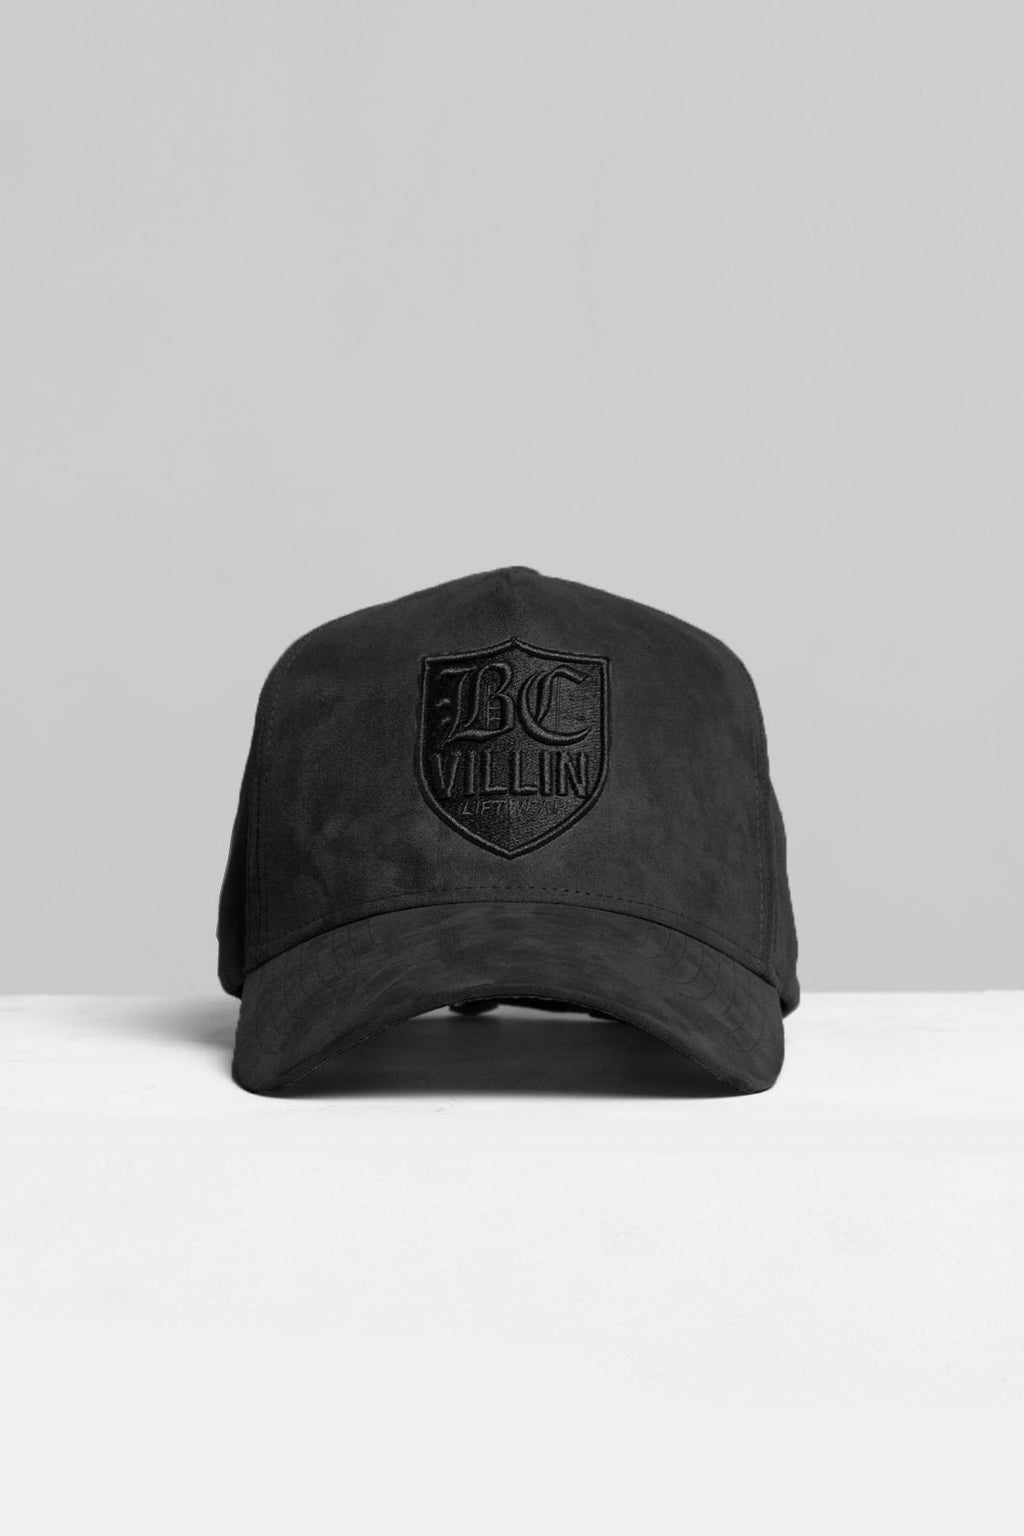 Villin Suede Aframe strapback Black on Black